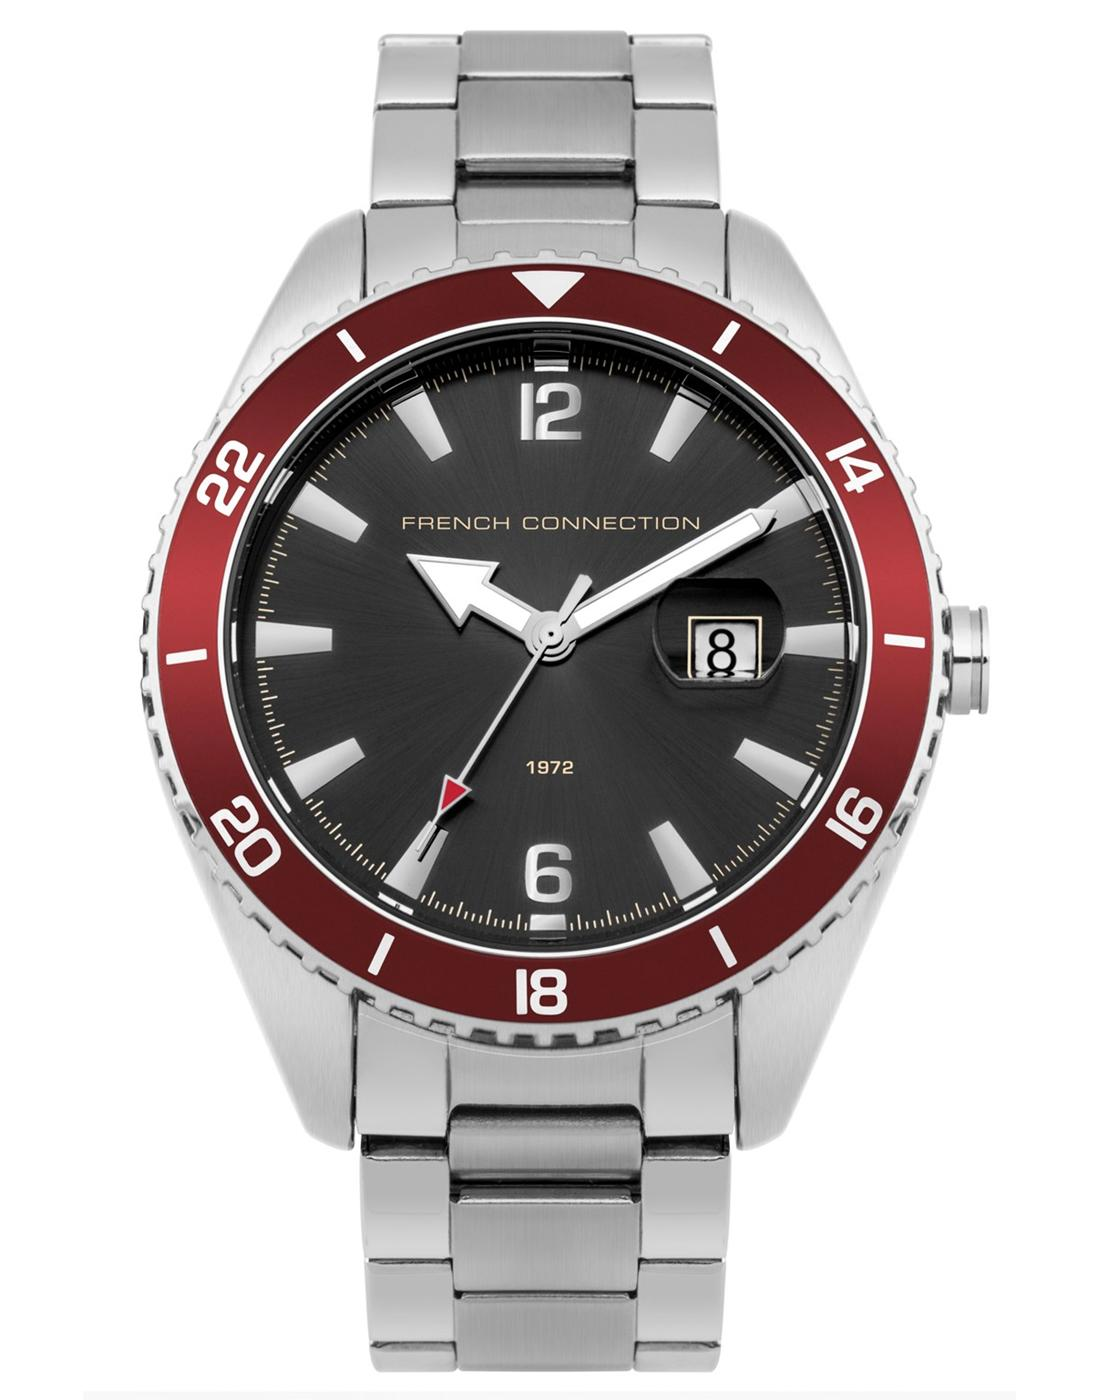 FRENCH CONNECTION Retro Cool Grey & Red Watch